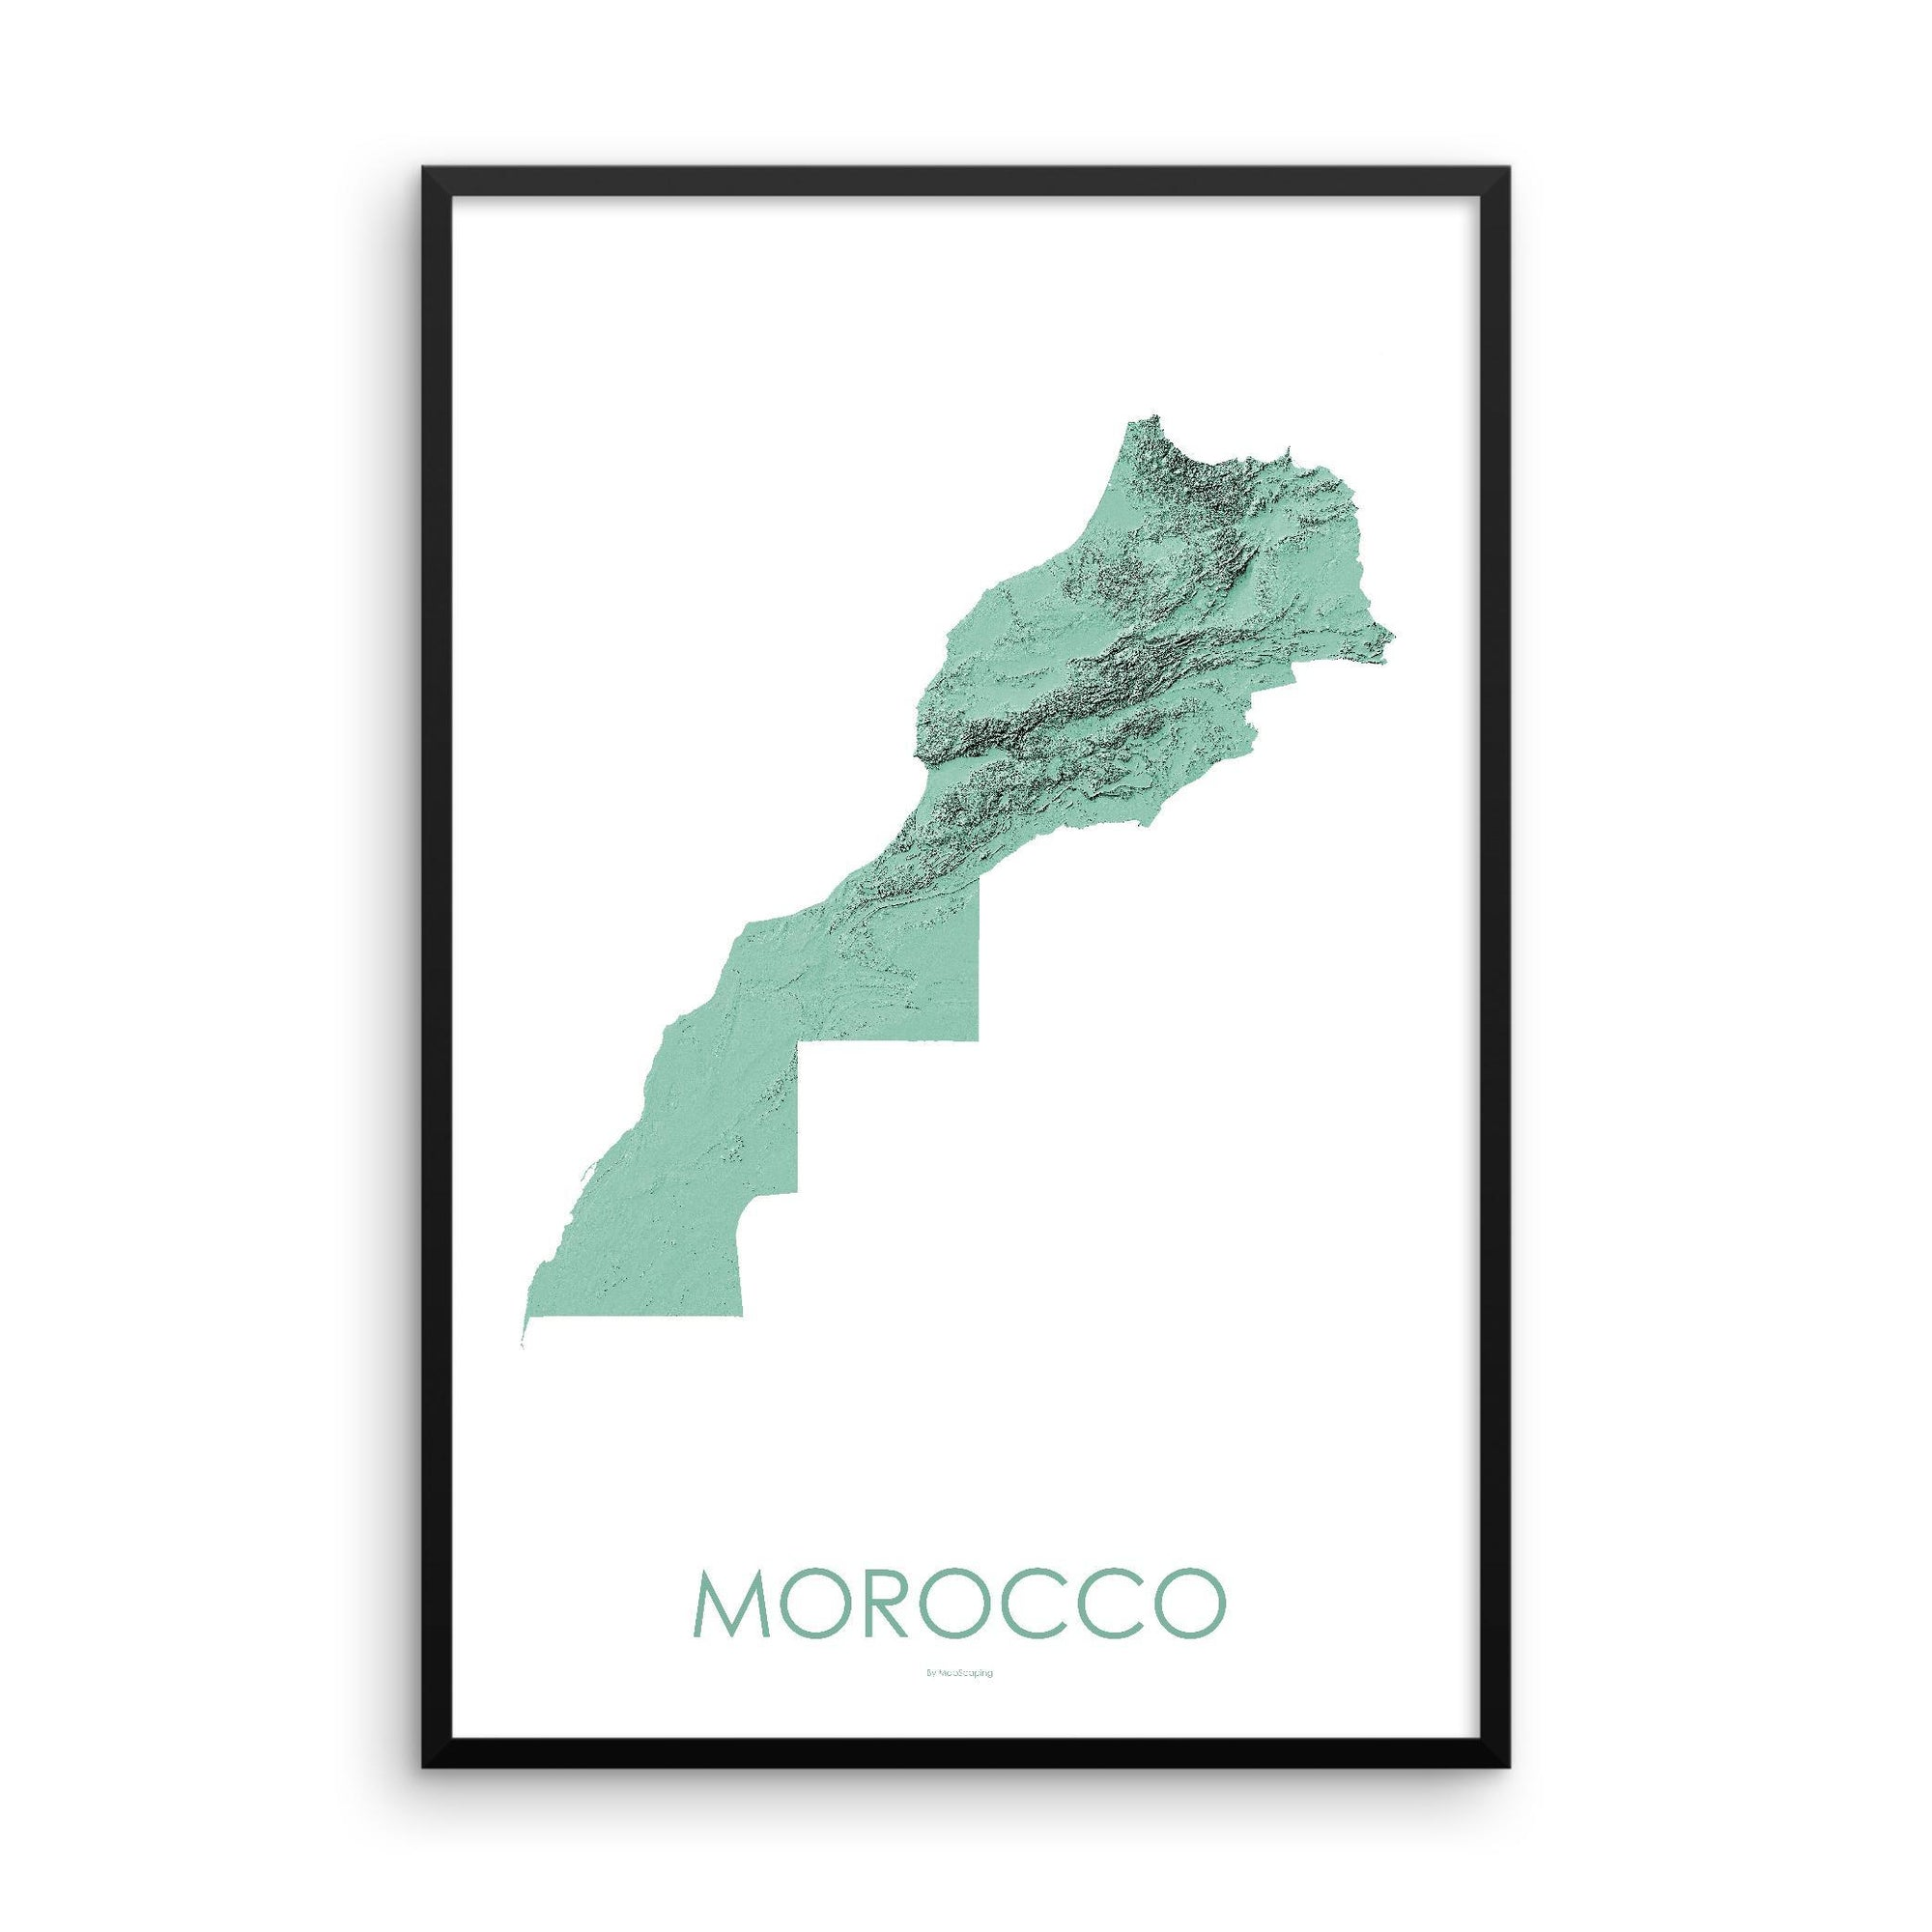 Morocco Poster 3D Mint-topographic wall art map by MapScaping